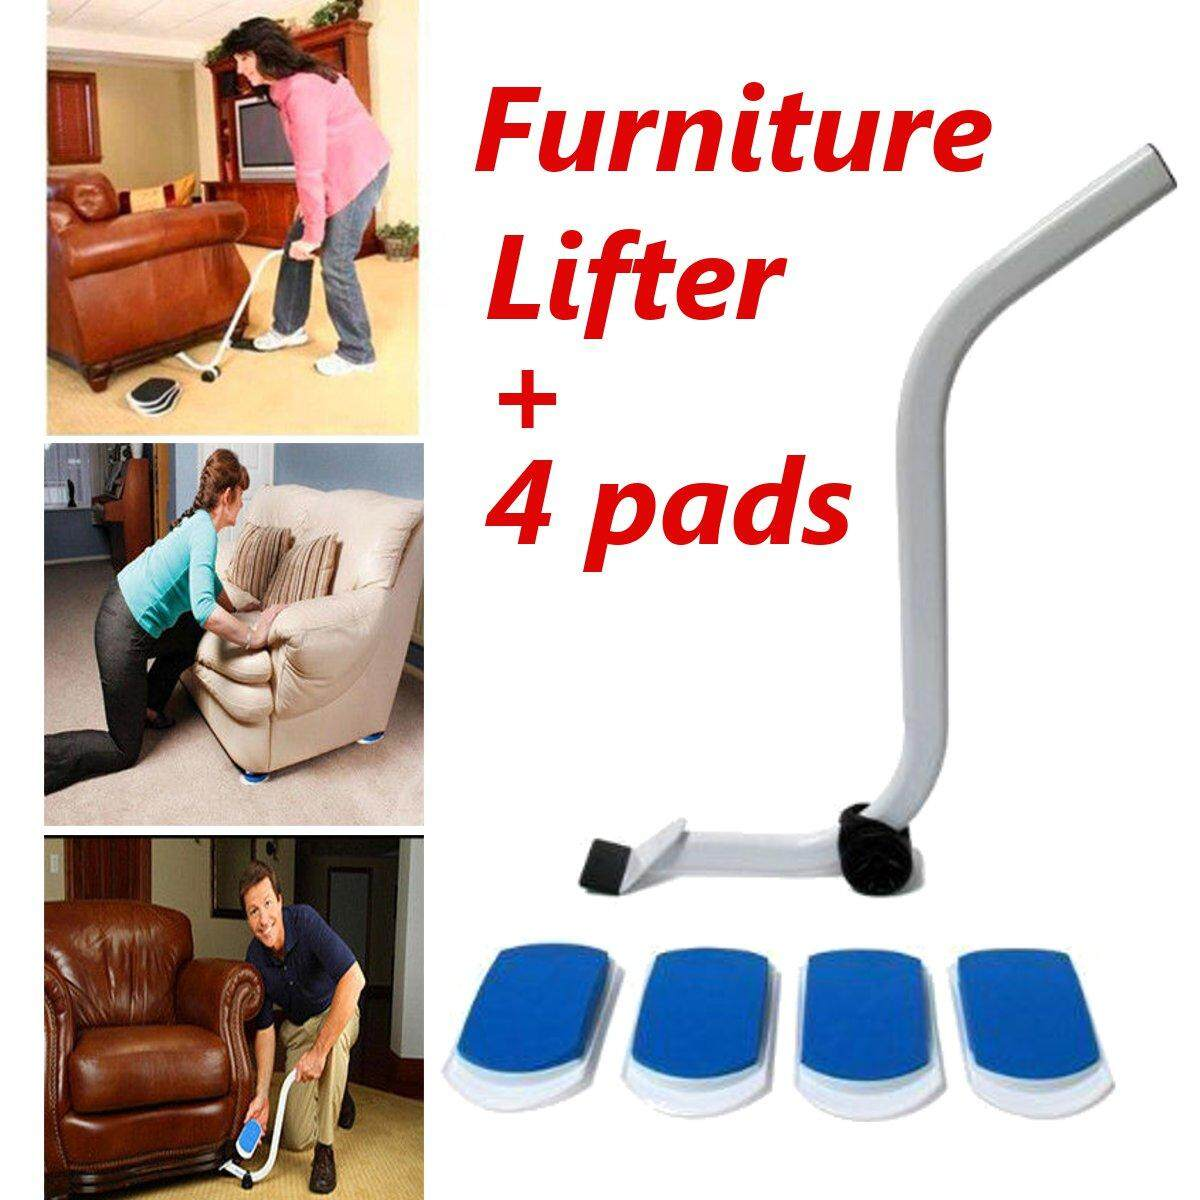 Furniture Lifter Moves With 4 Mobile Pads Sliders Kit Home Moving Lifting System By Moonbeam.